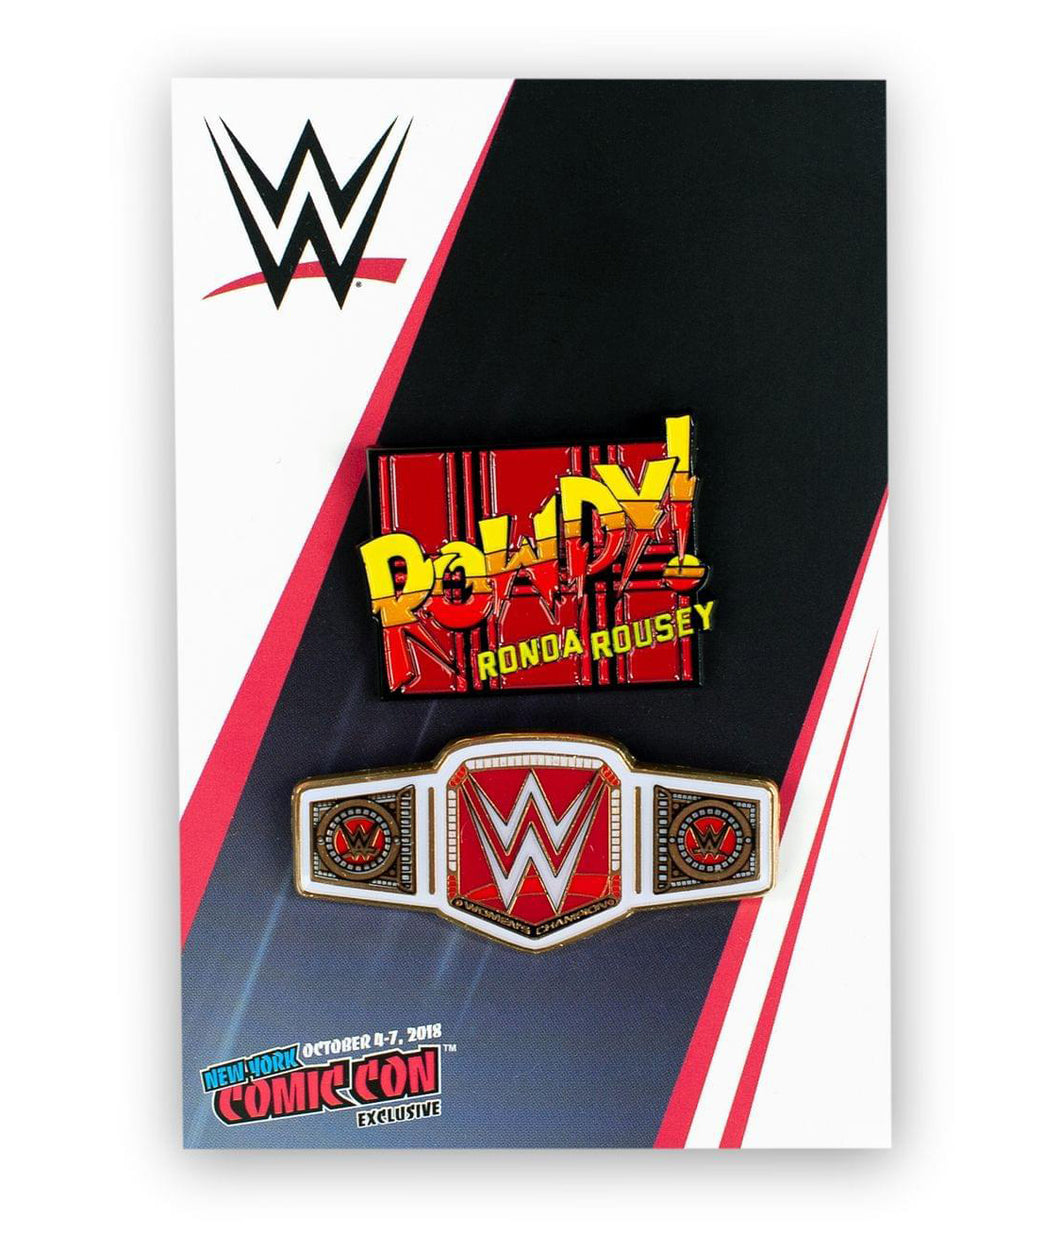 WWE Rowdy Ronda Rousey Collector Pin Set | Exclusive Women's Champion Belt Pin